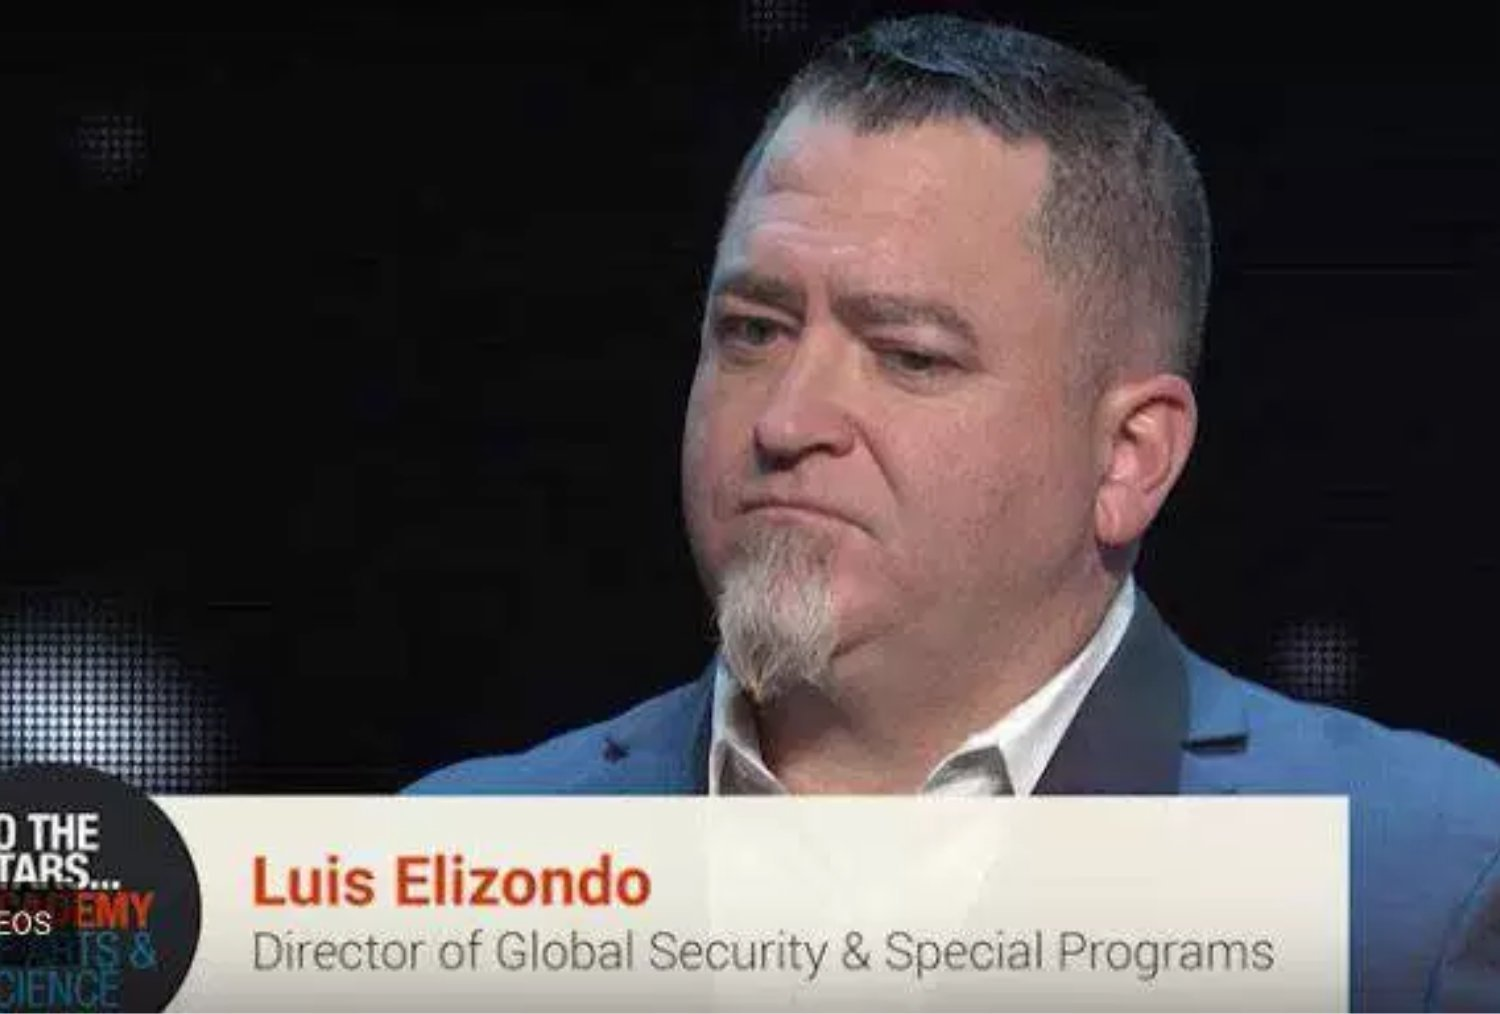 El Sr. Luis Elizondo, ex-director del AATIP en el Pentágono y actual director de Seguridad Global y Programas Especiales del proyecto To the Stars Academy